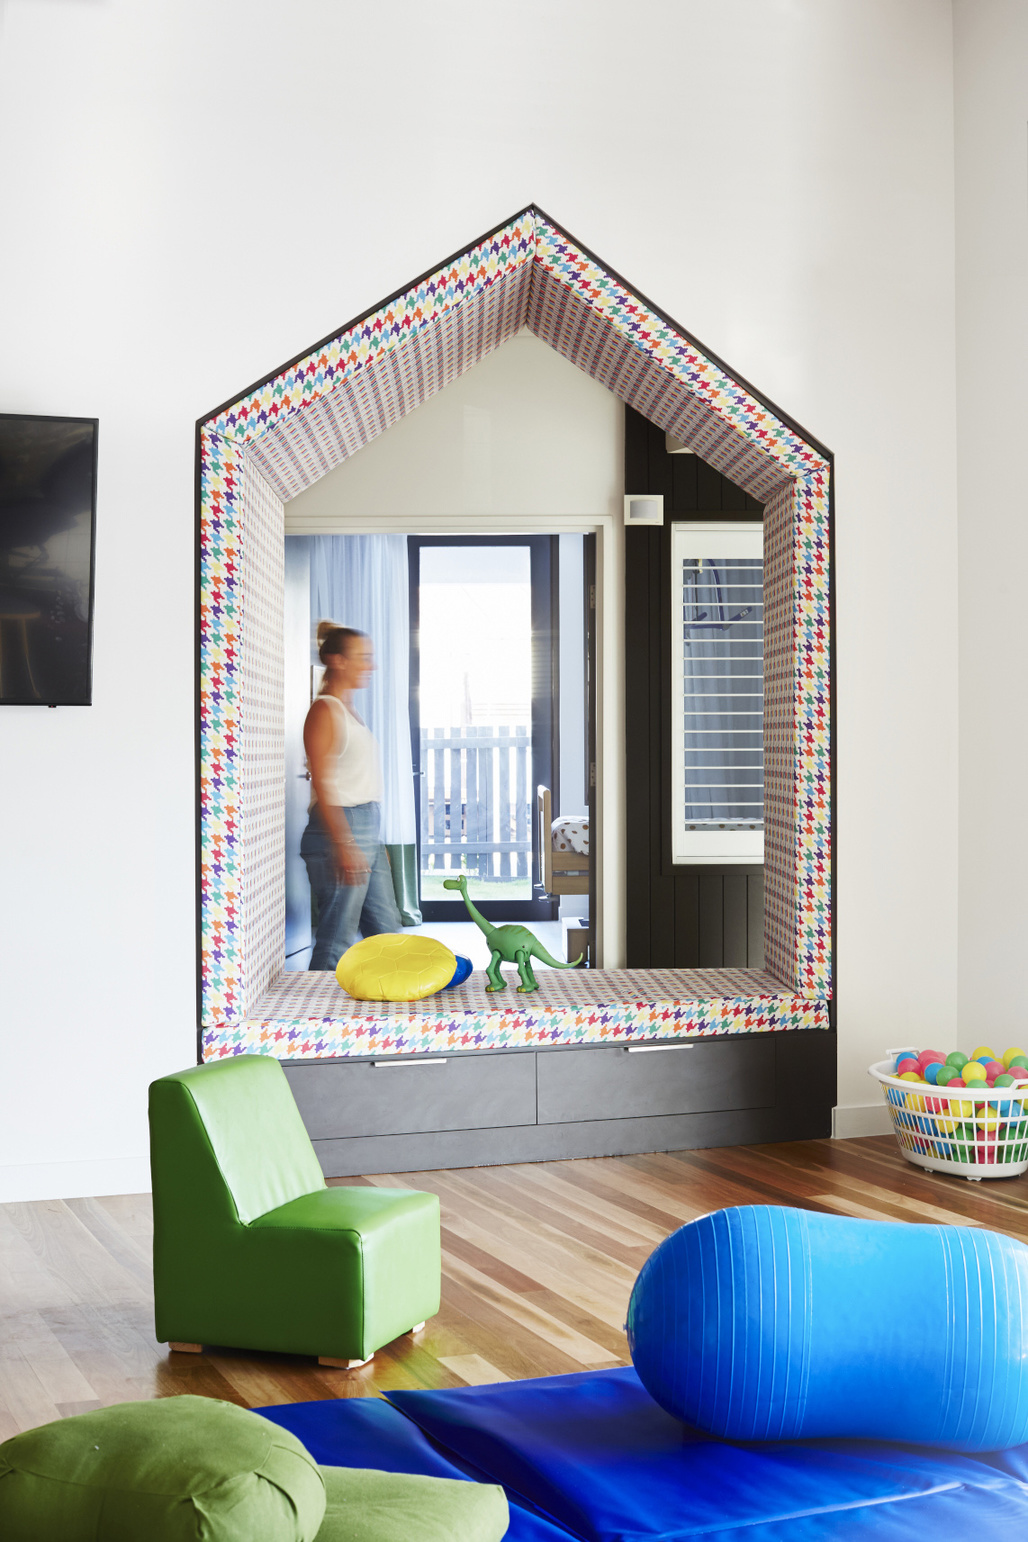 Ten Top Images on Archinects Kids Spaces Pinterest Board News